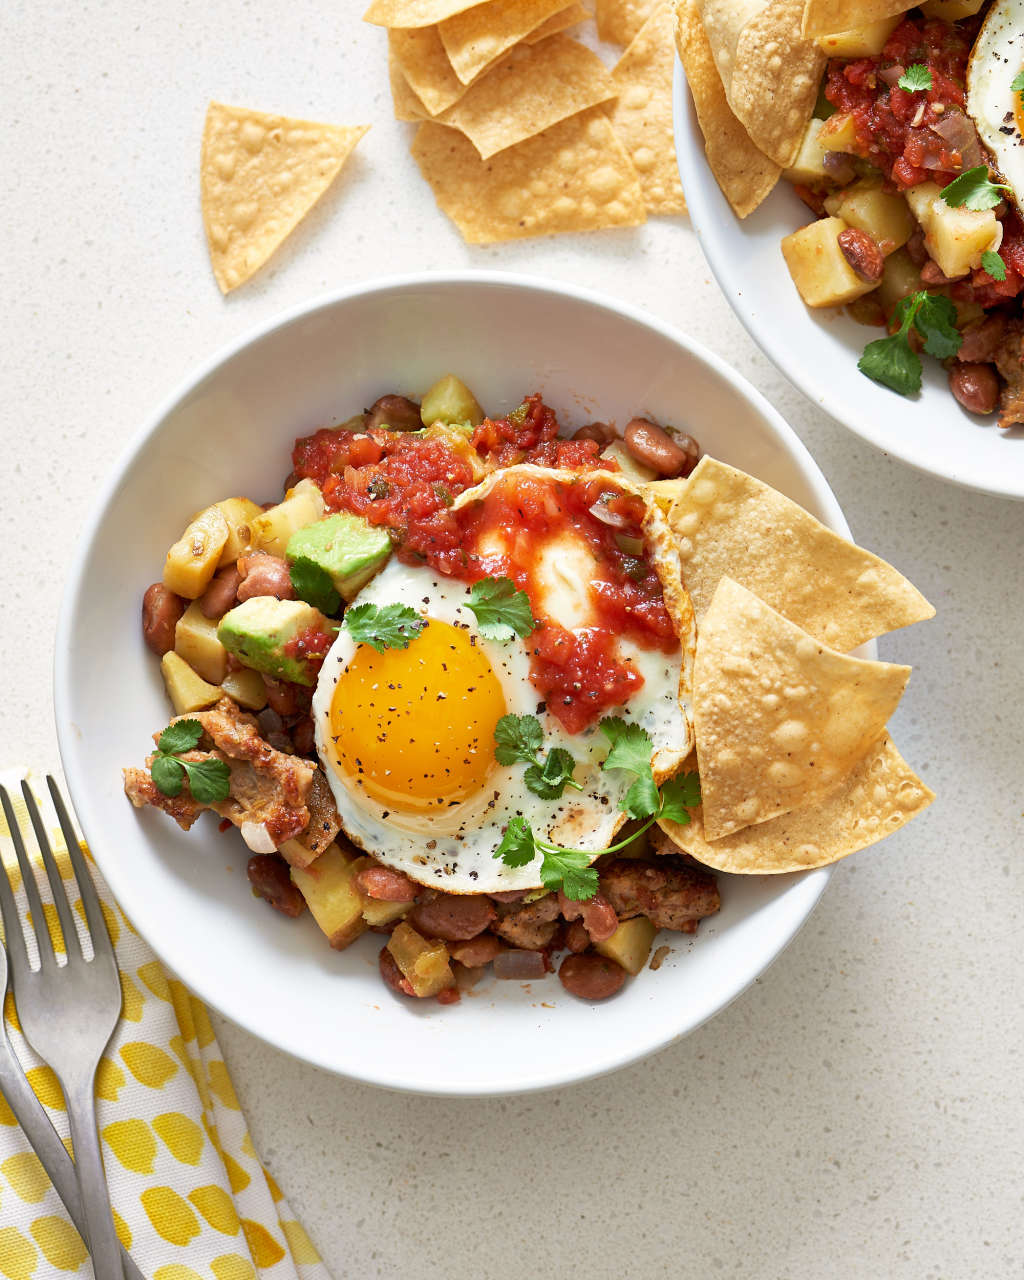 13 Ways to Let the Slow Cooker Make You Breakfast